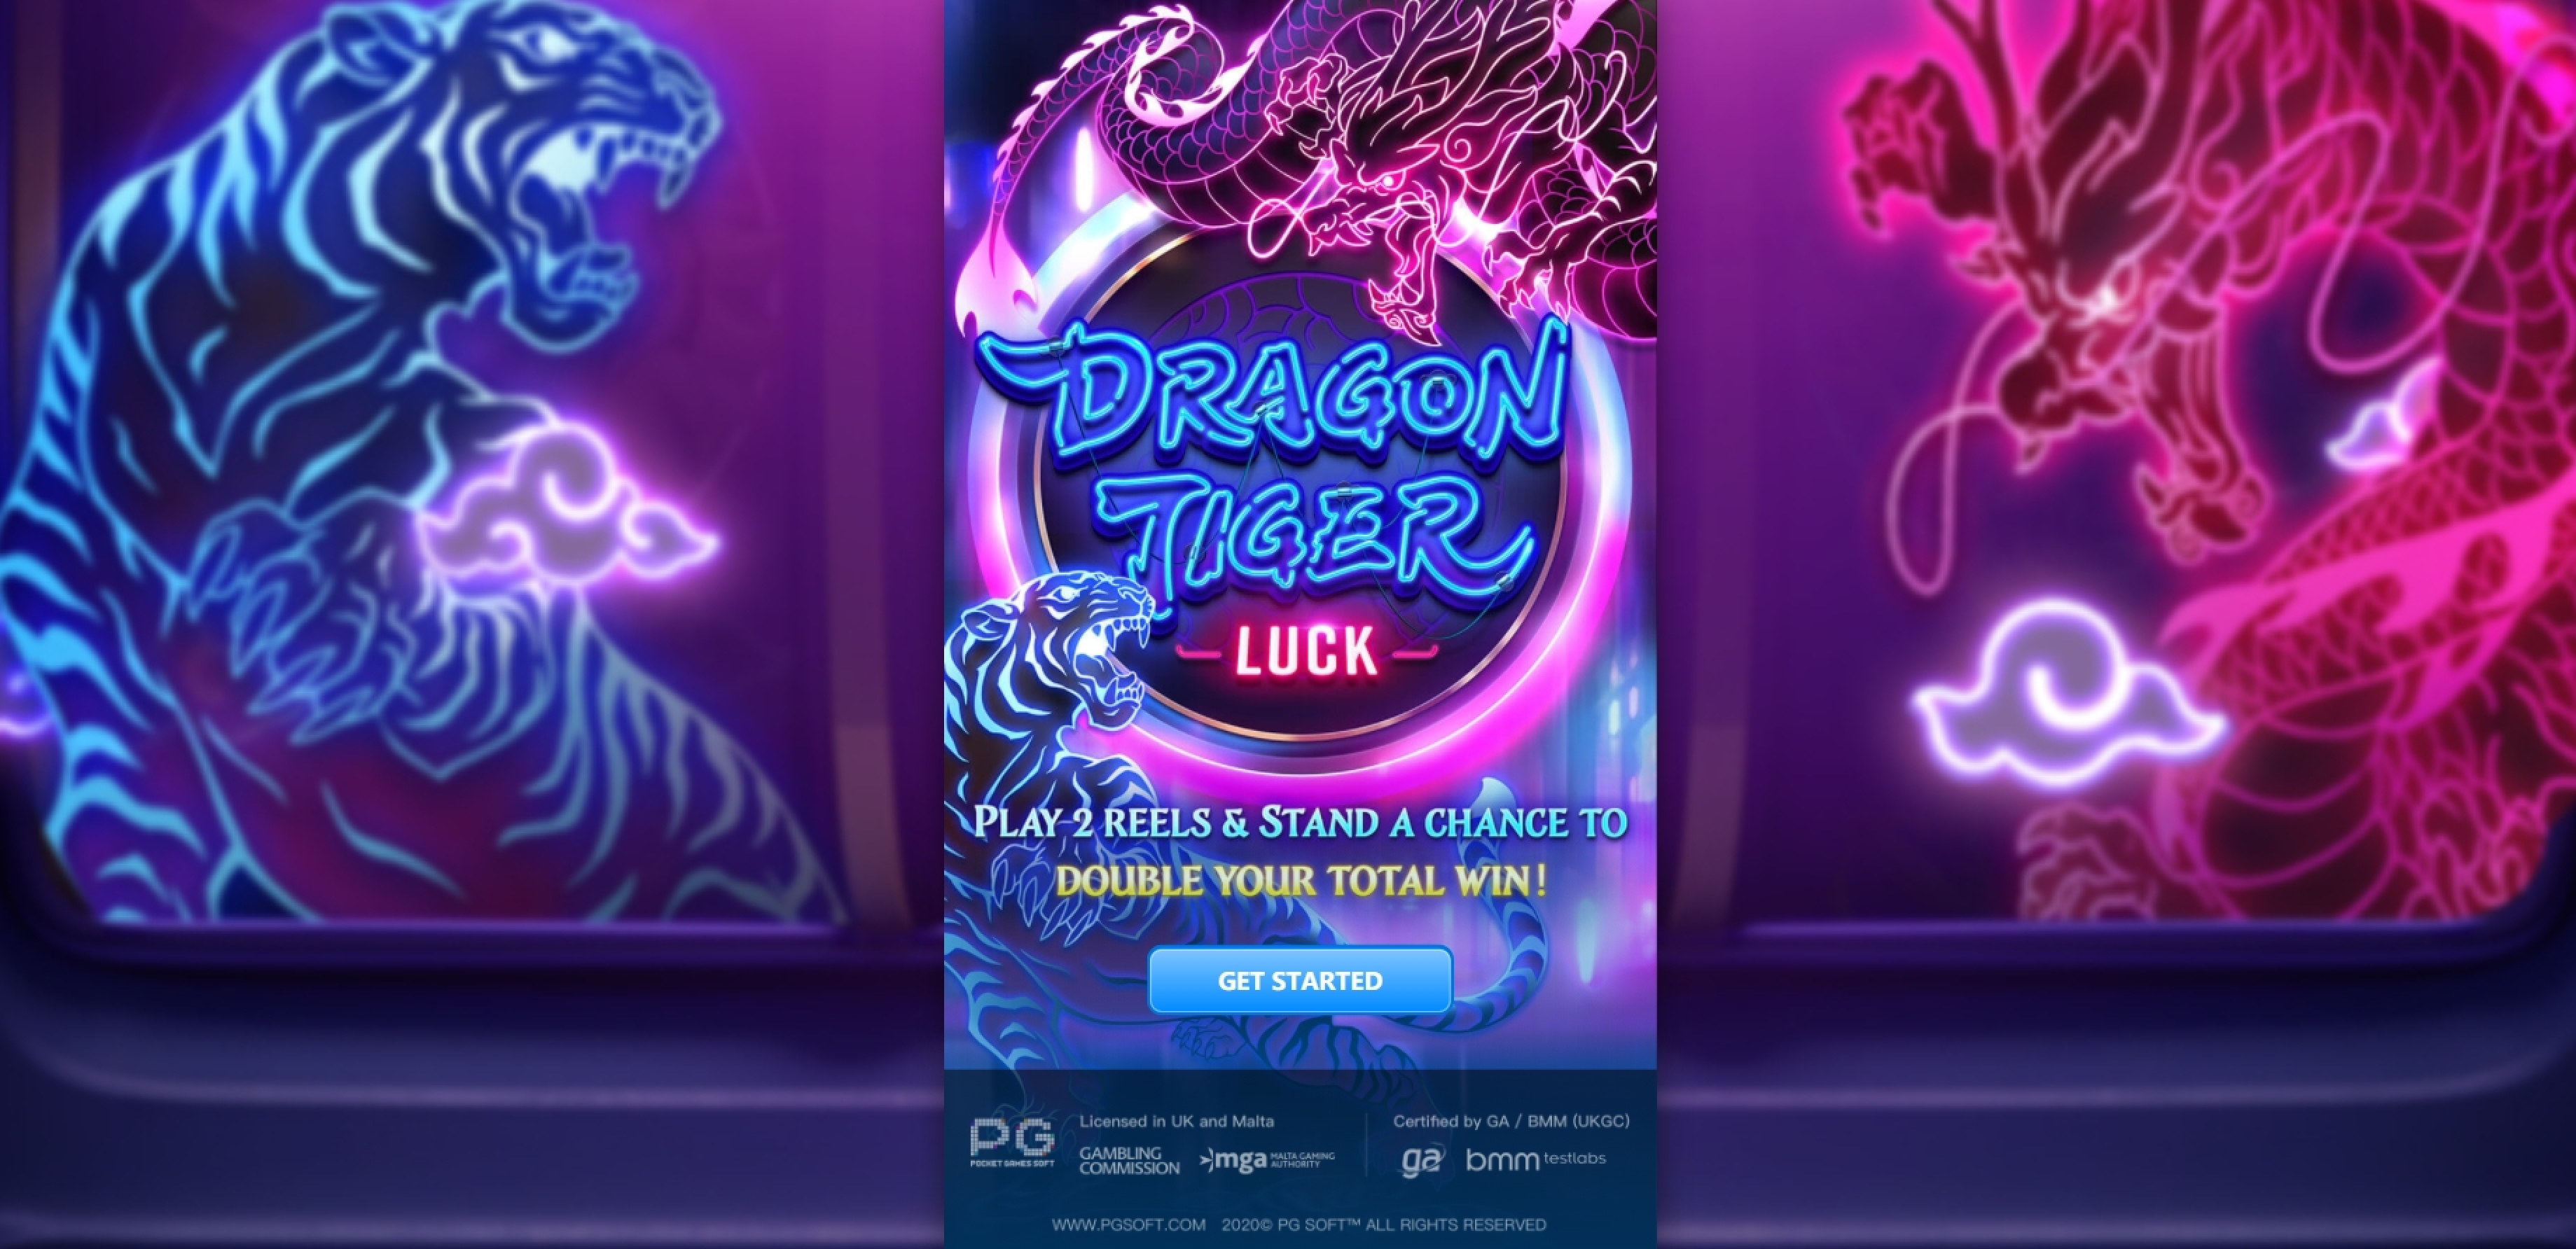 Play Dragon Tiger Luck Free Casino Slot Game by PG Soft